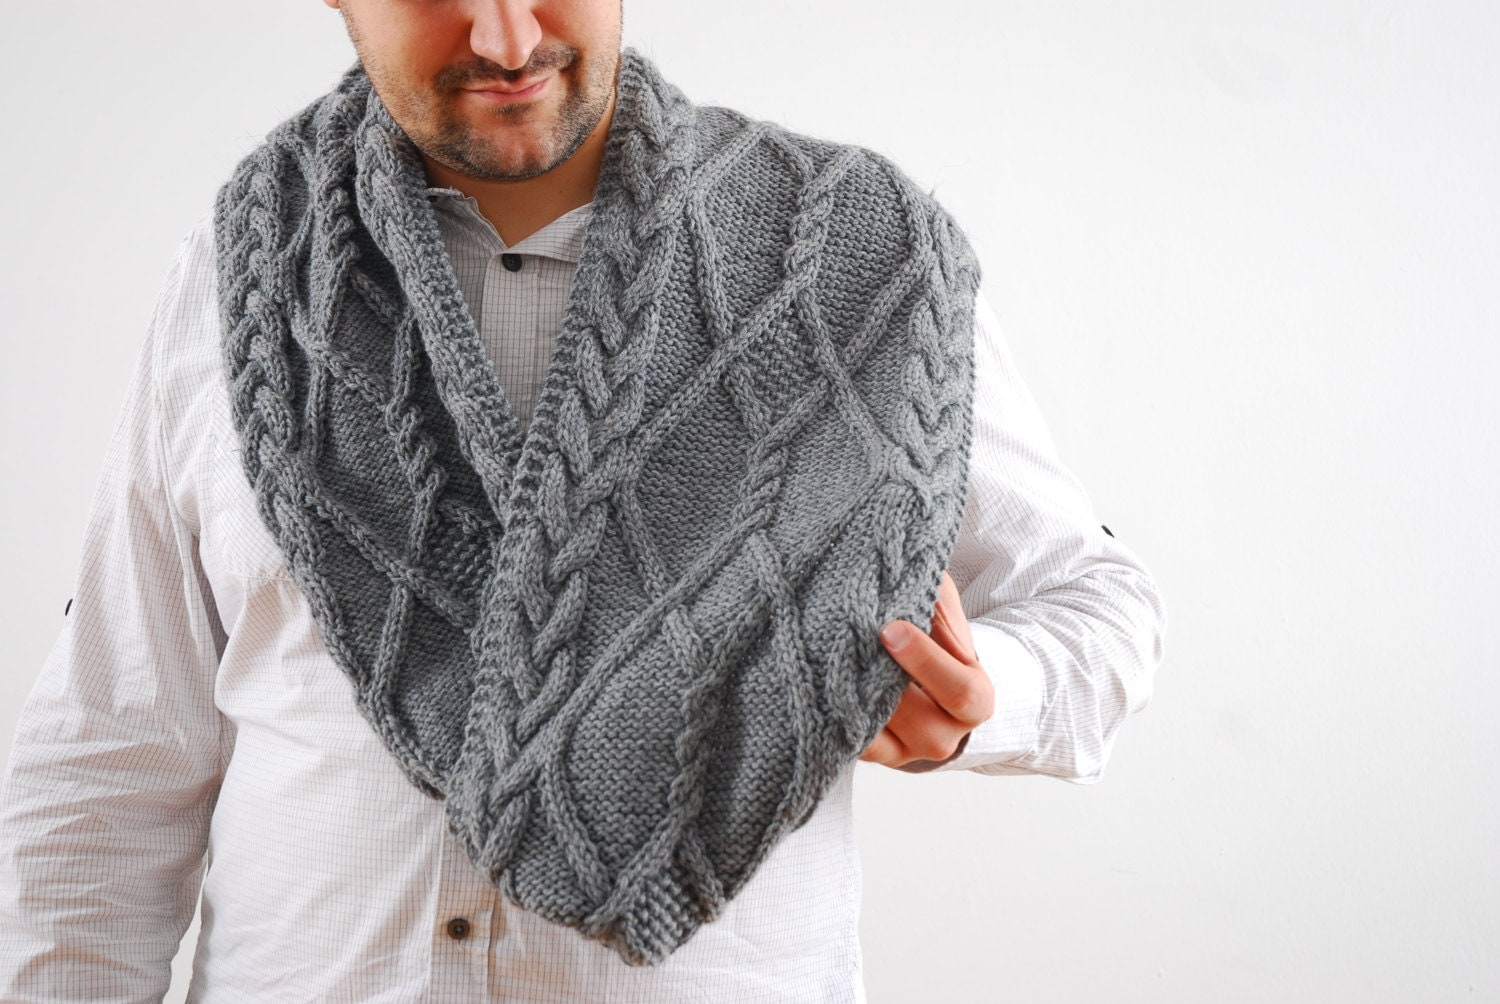 Knitting Mens Scarves : Extra long grey scarf hand knit wool mens cable